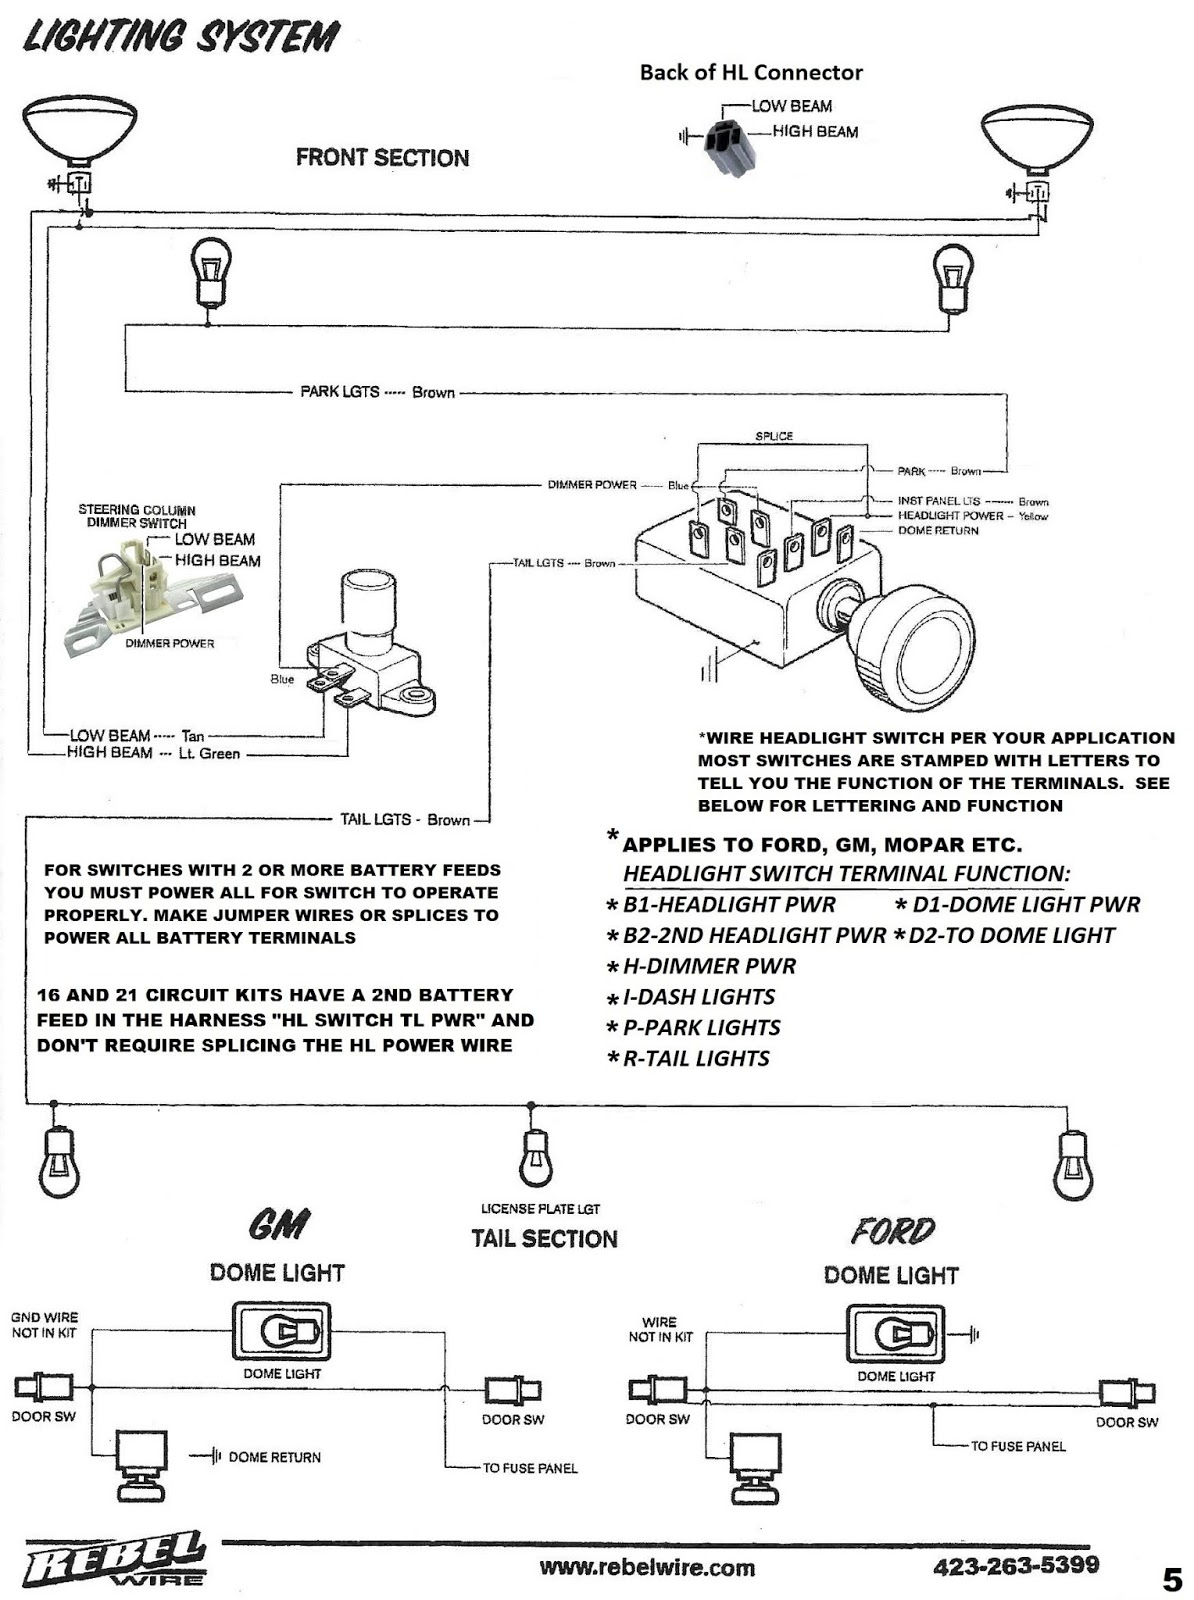 medium resolution of 60 s cadillac headlight switch rebel wire lighting system wiring diagram